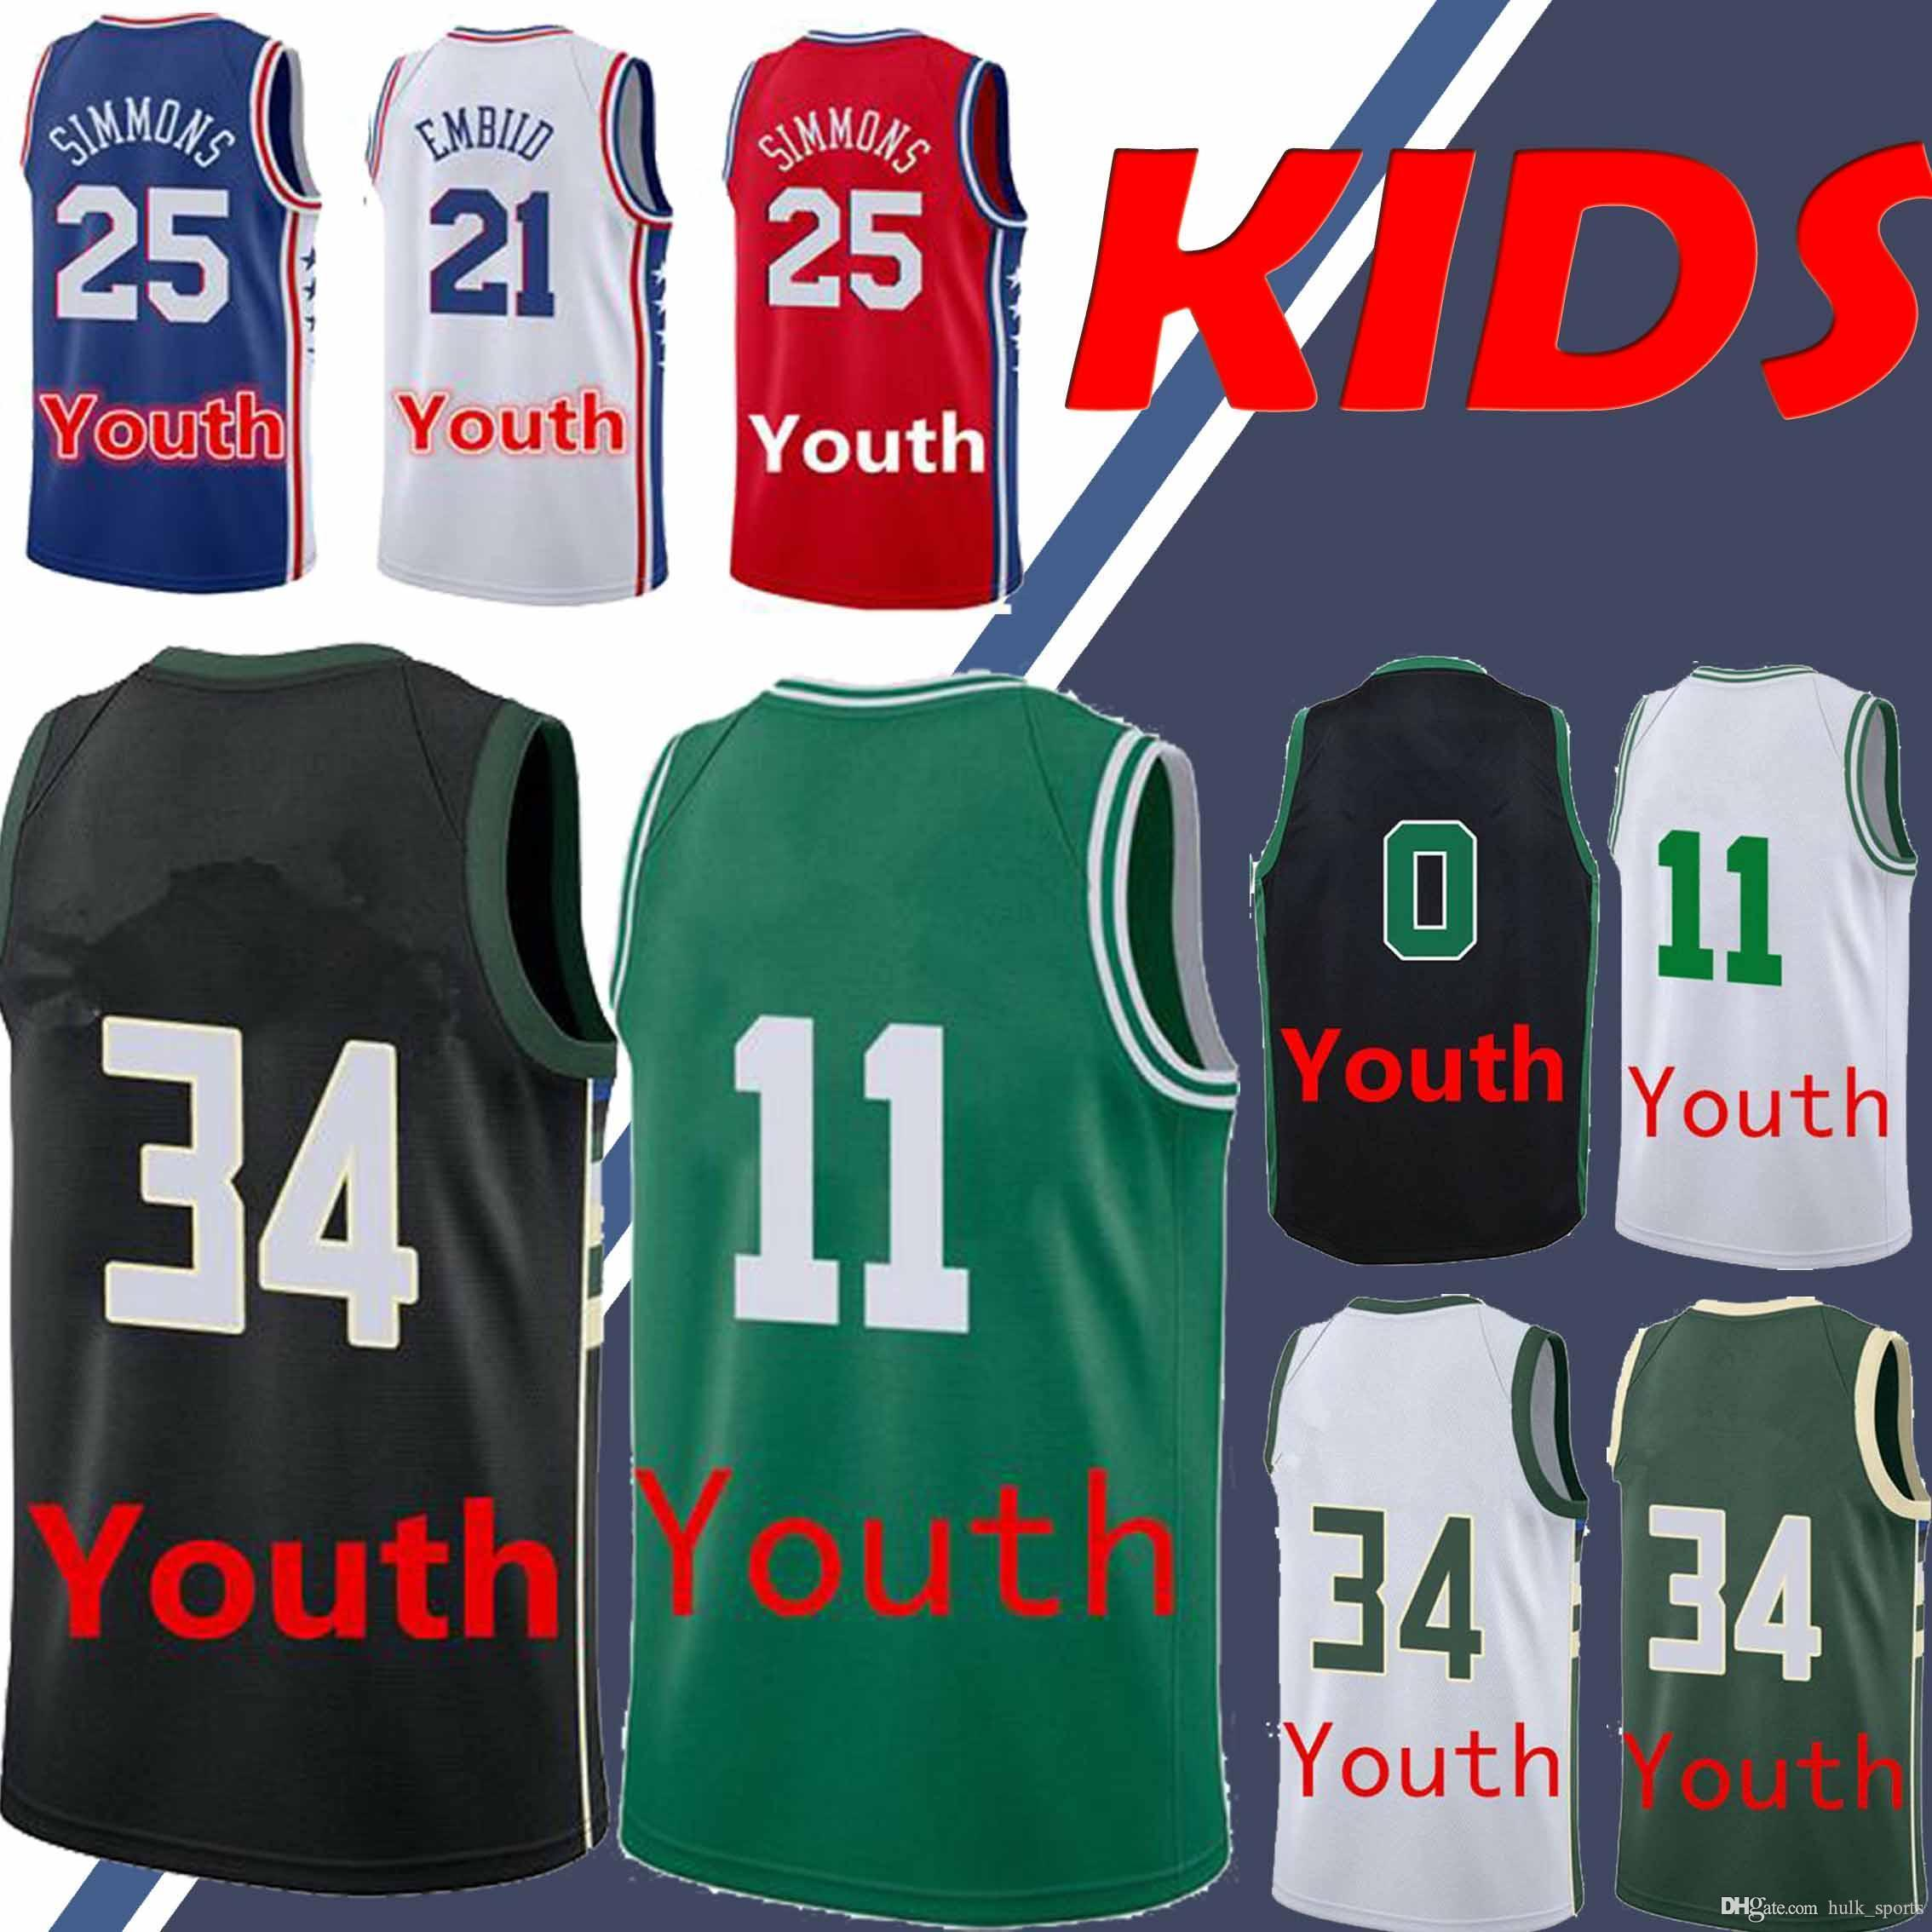 check out 0ed8c bc03e YOUTH Boston 0 Tatum 11 Irving jersey Philadelphia 21 Embiid 25 Simmons  jerseys Bucks 34 Antetokounmpo jersey kids